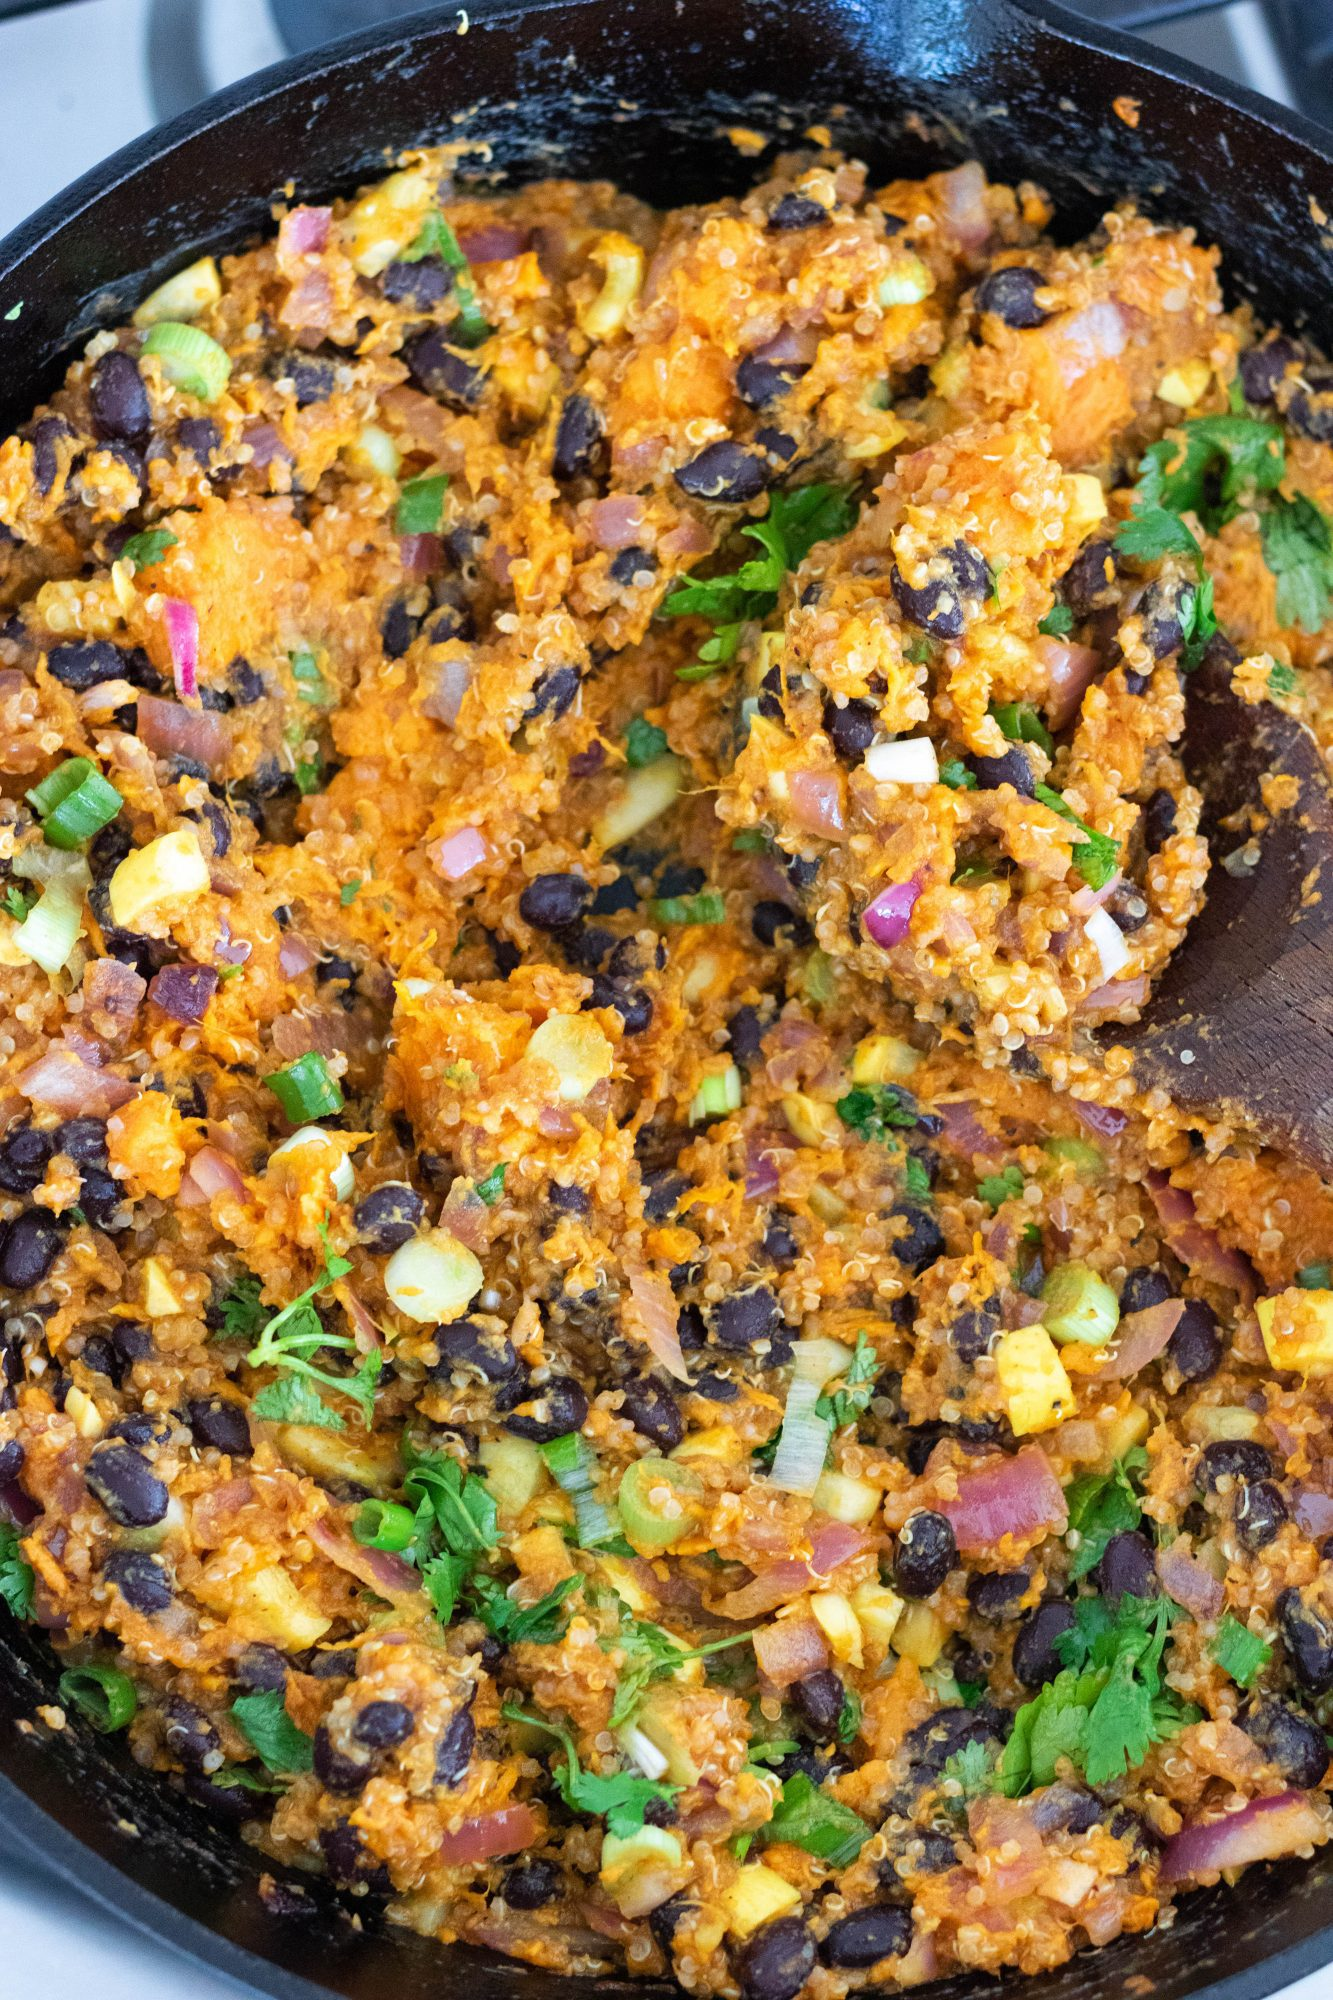 Vegan Enchilada Stuffing for Bell Peppers